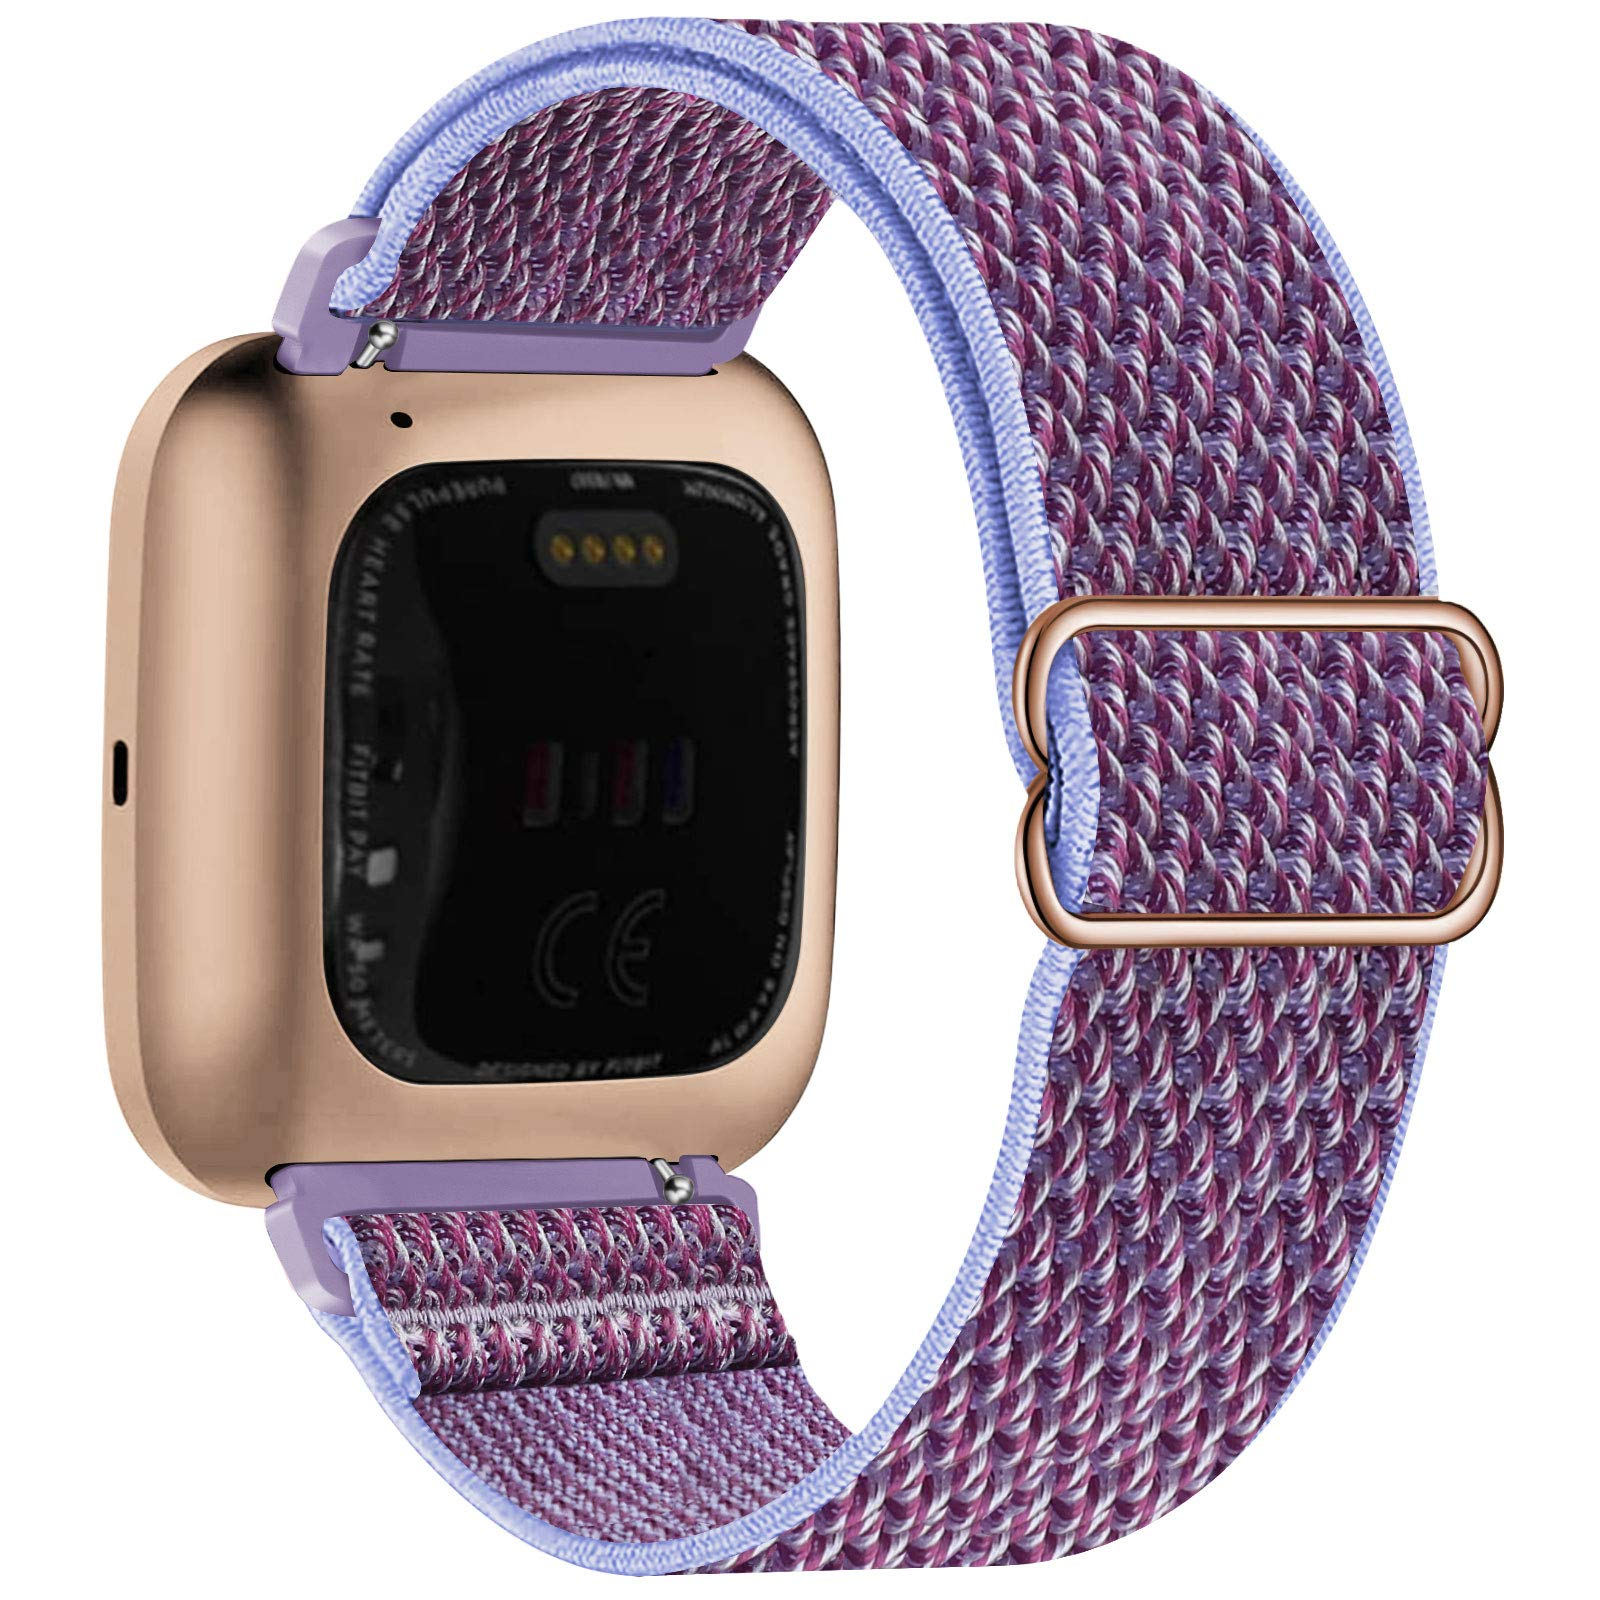 UHKZ Stretchy Nylon Bands Compatible with Fitbit Versa/Versa 2/Versa Lite/Versa SE for Women Men,Adjustable Breathable Fabric Sport Elastic Replacement Wristband for Fitbit Versa Smart Watch